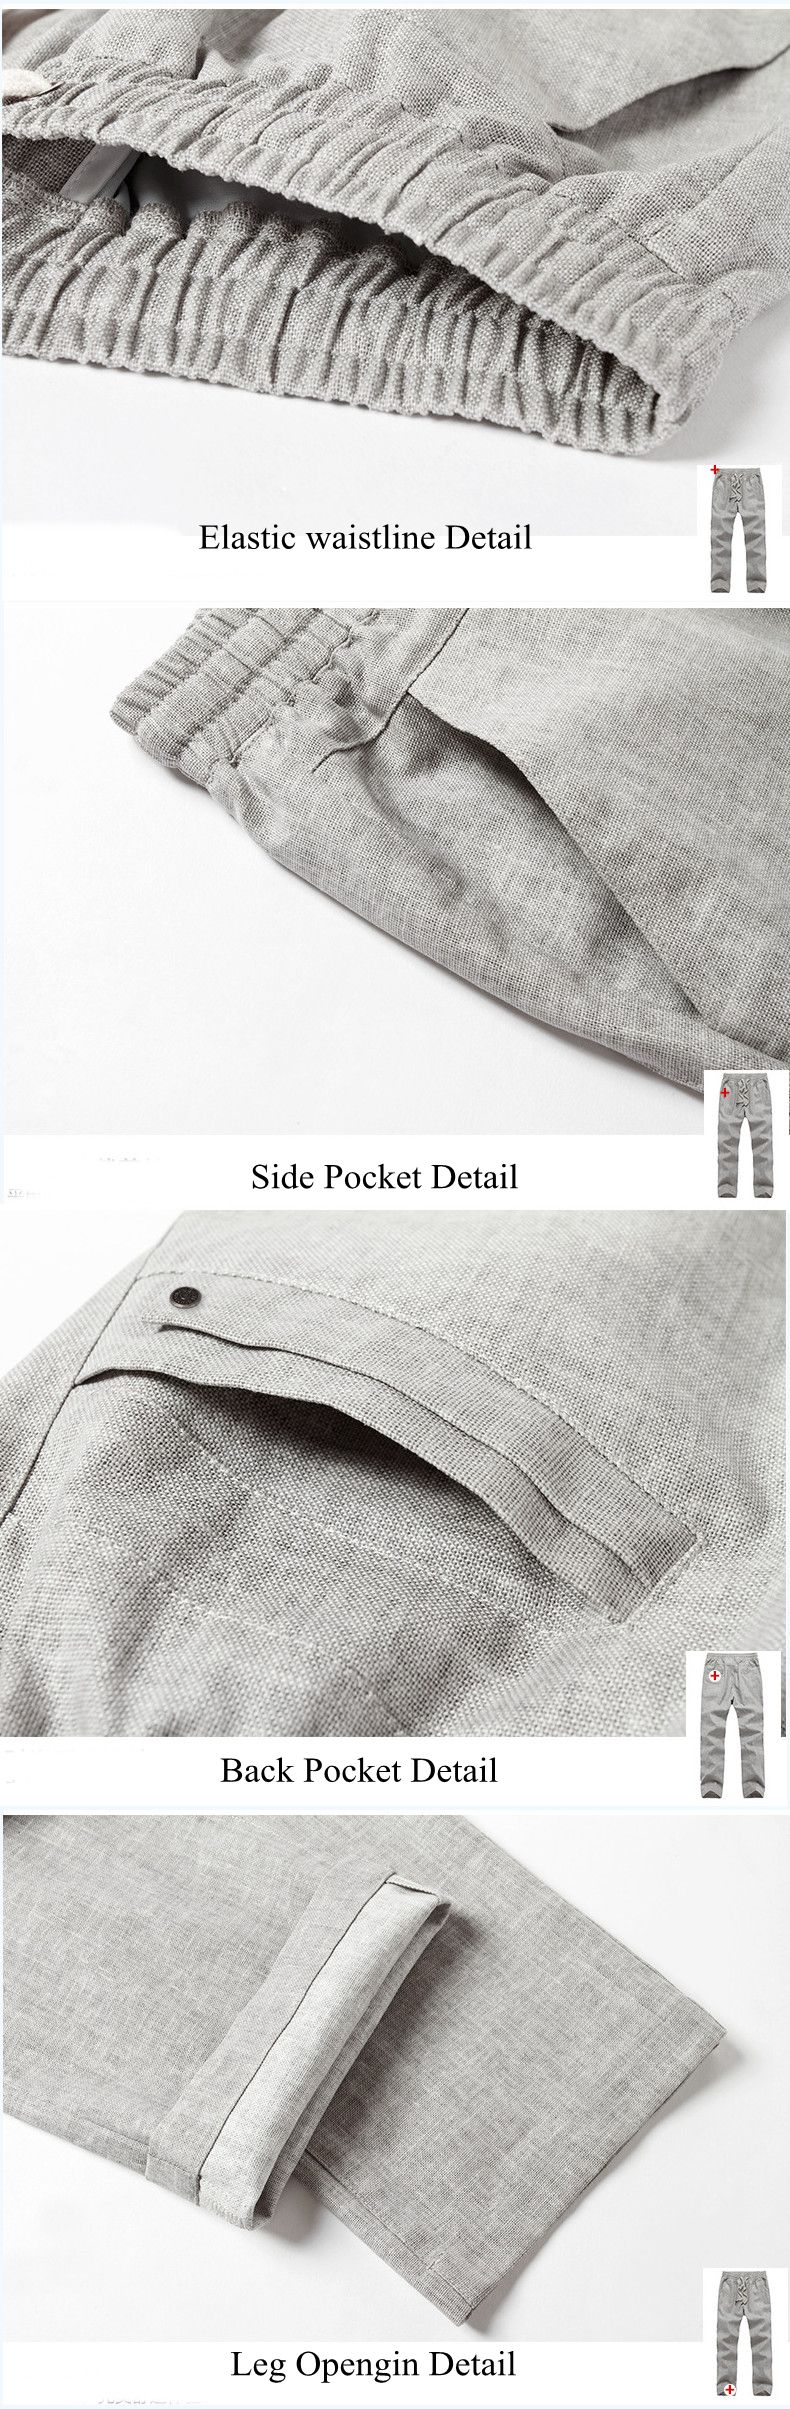 Summer Men's Linen Soft Breathable Pants Casual Solid Color Loose Drawstring Trousers